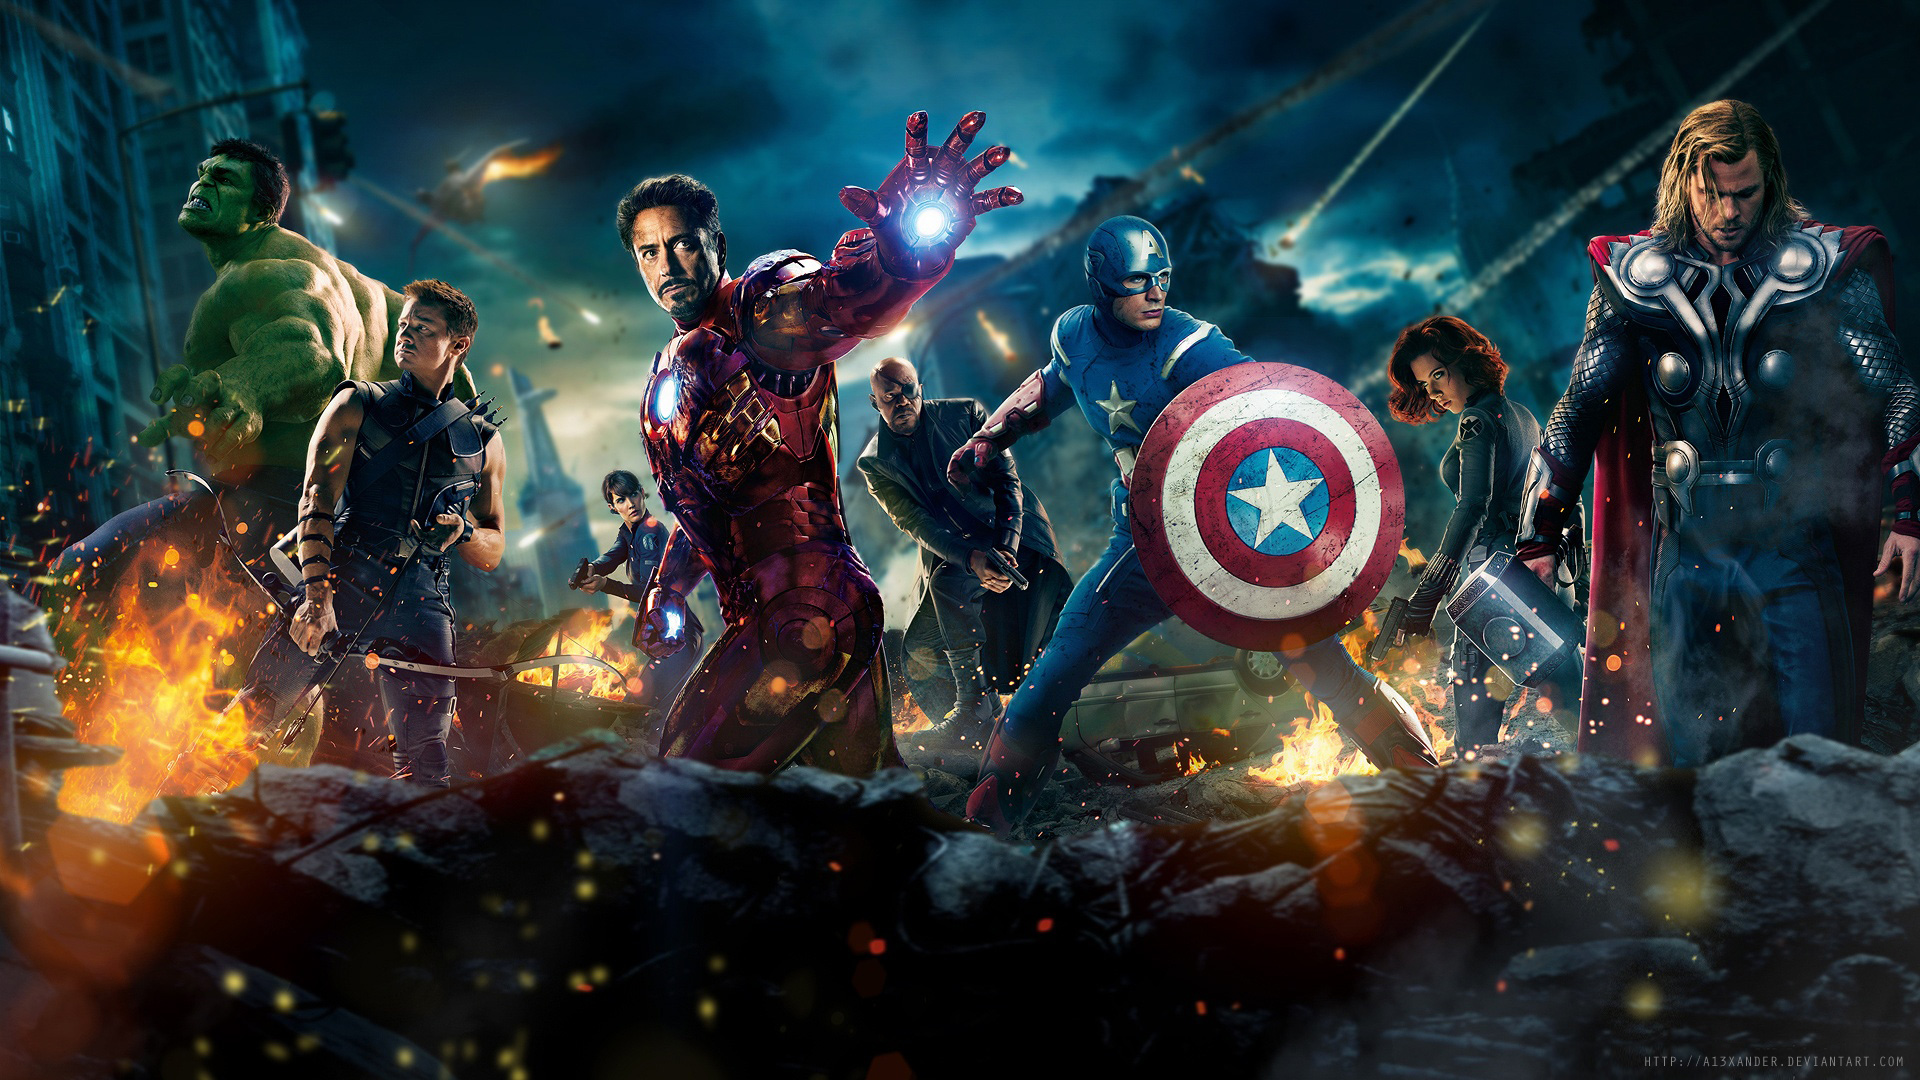 Captain america hd wallpapers 1080p wallpapersafari - Captain america hd images download ...